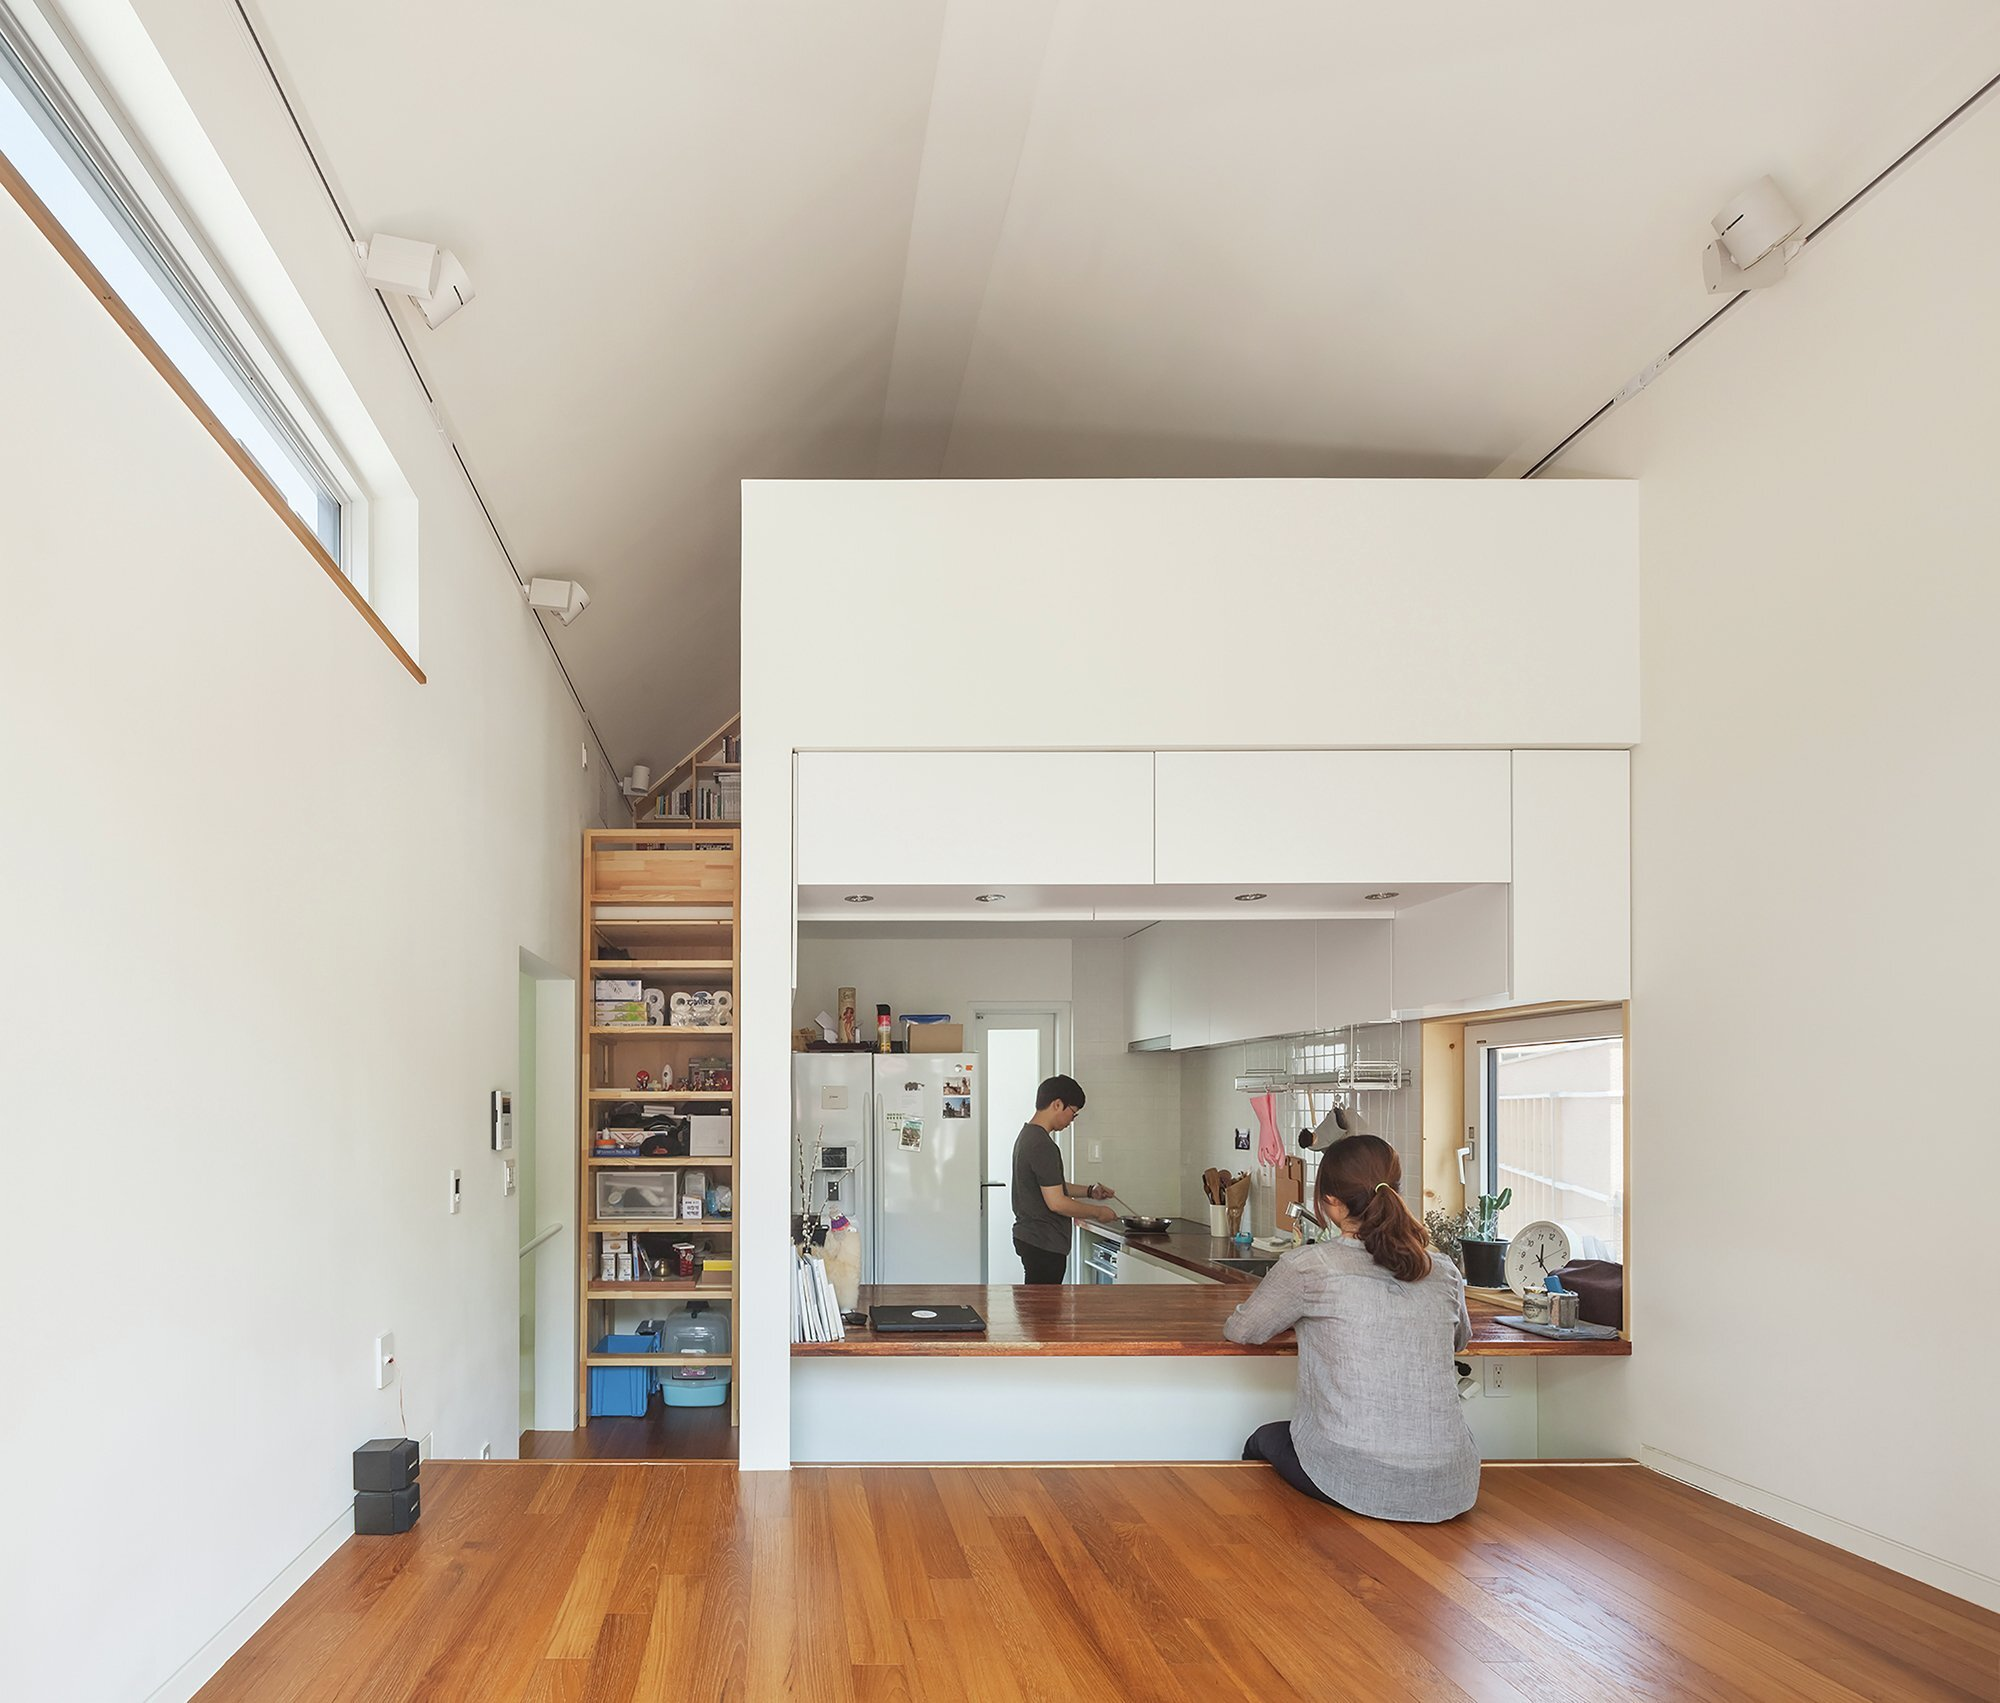 50m2 House - A Newlyweds Small Home in Seoul by OBBA